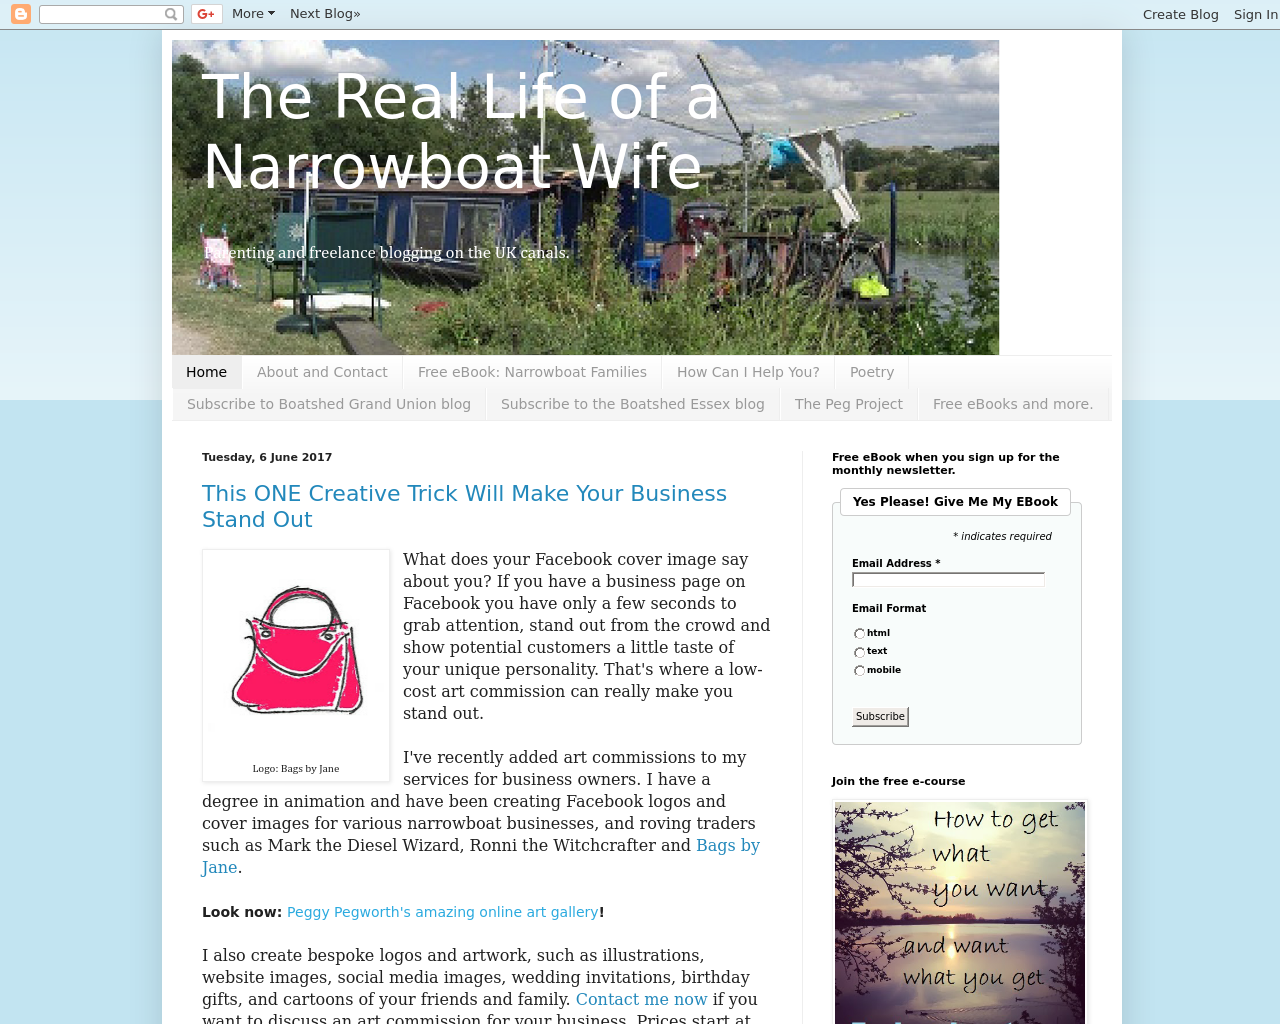 The-Real-Life-of-a-Narrowboat-Wife-Advertising-Reviews-Pricing